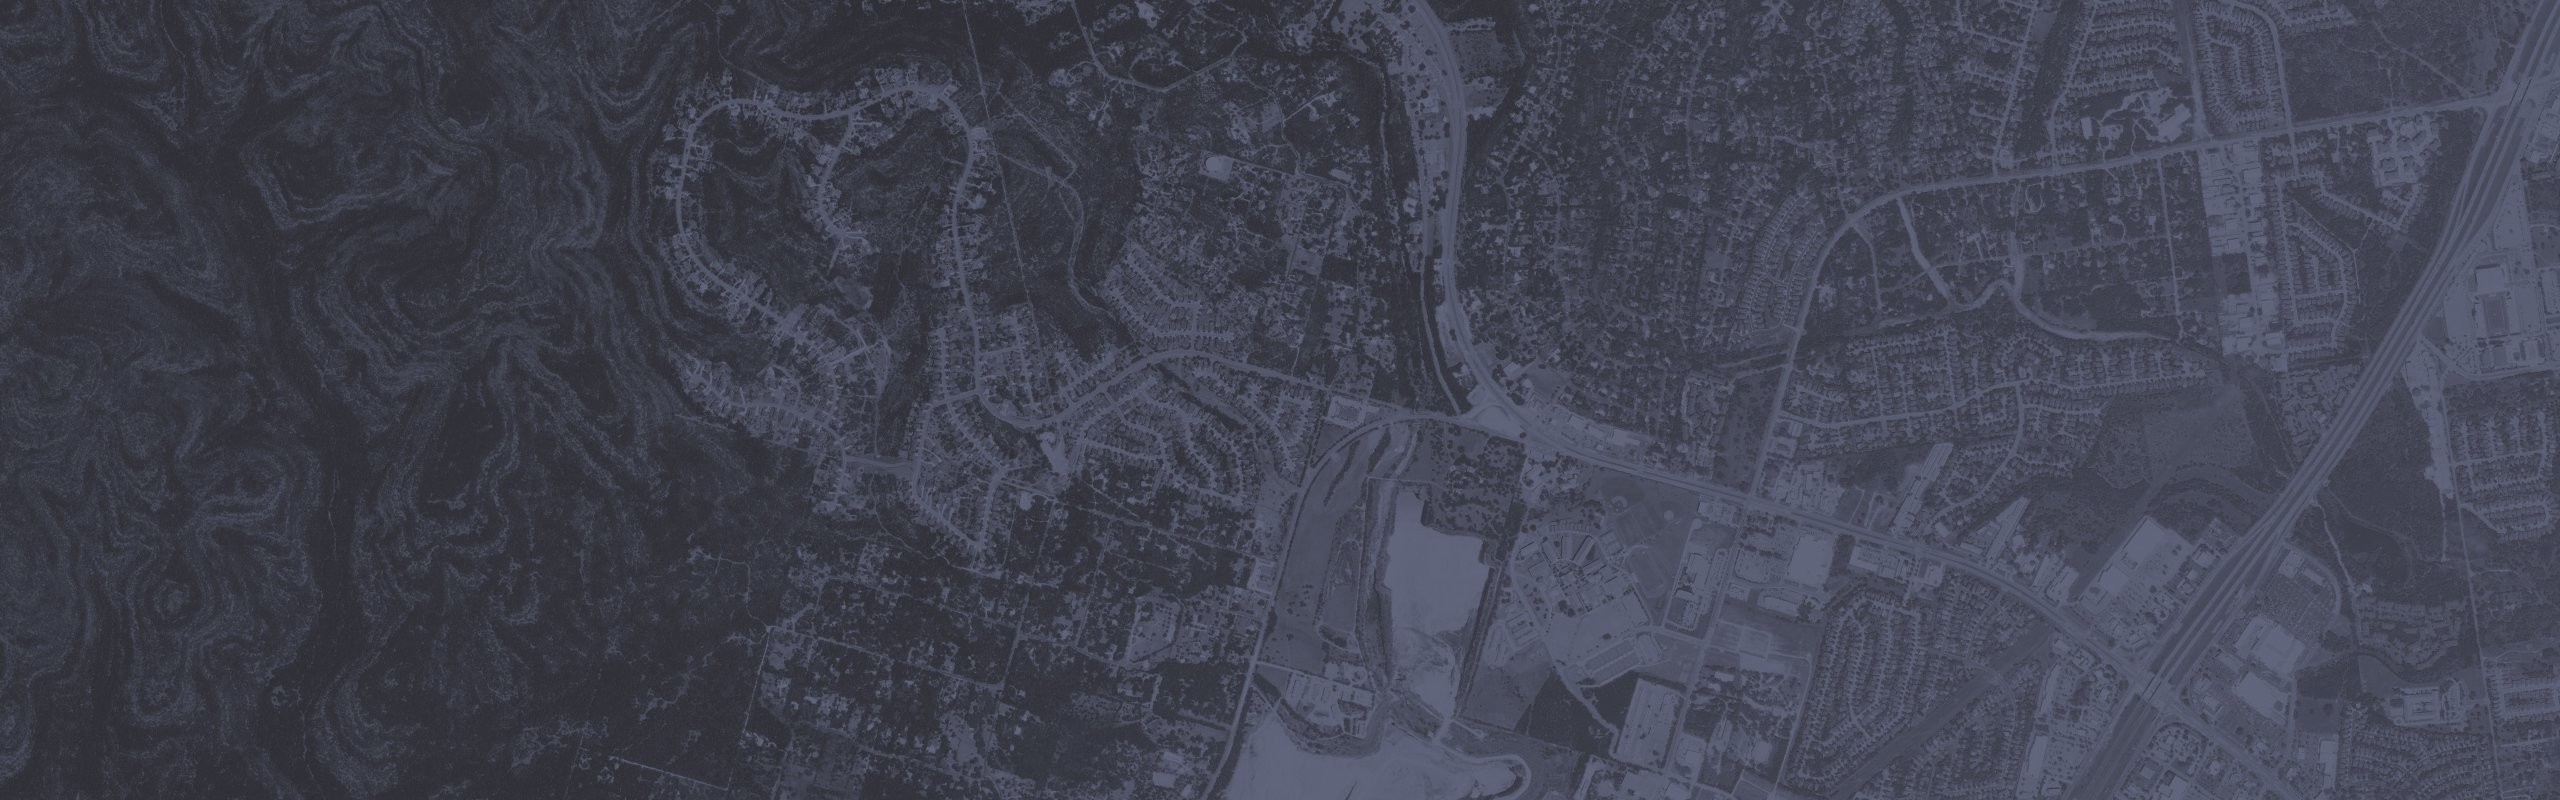 Satellite imagery of Helotes,Texas